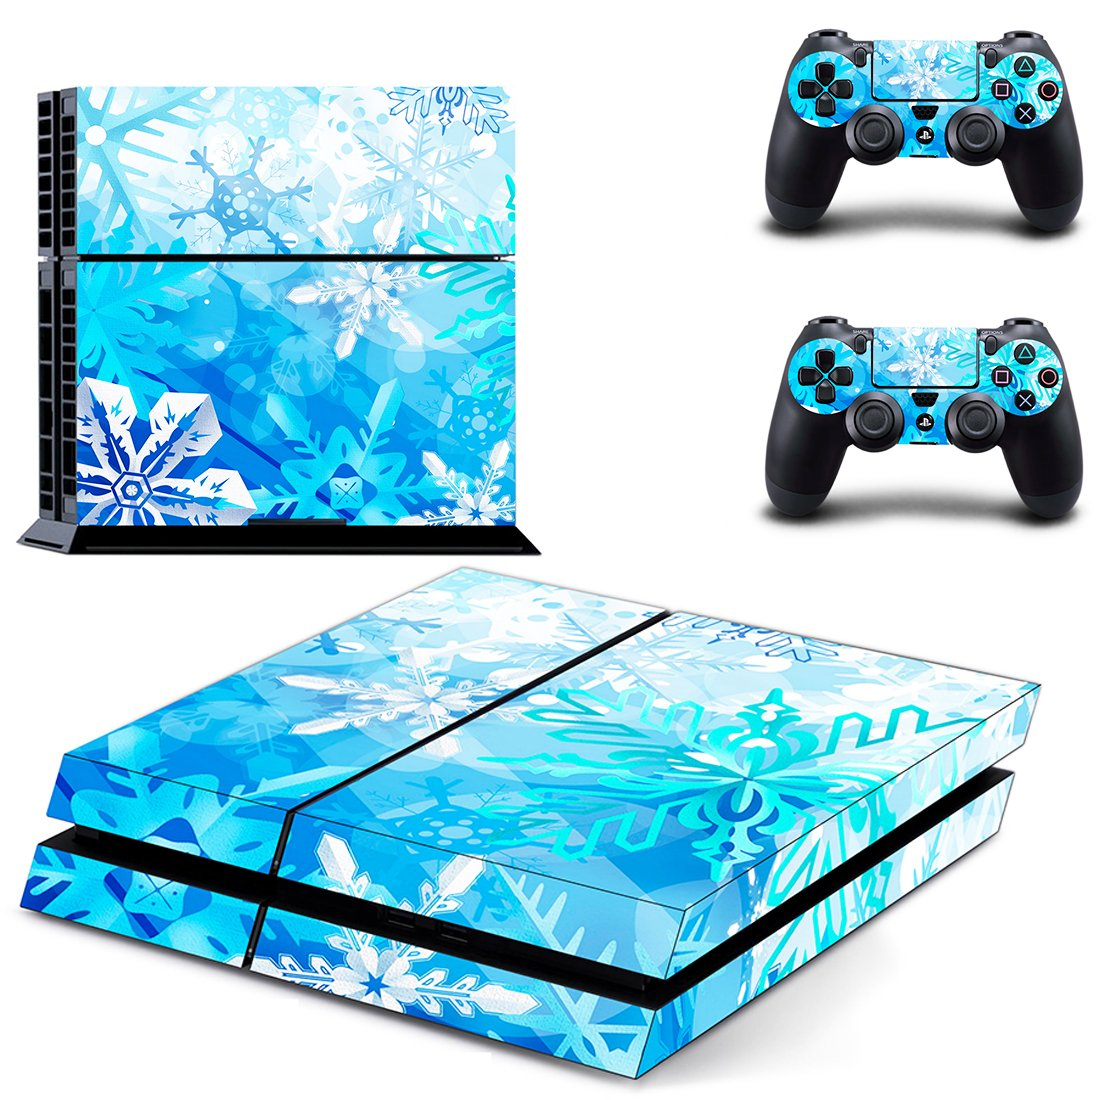 Winter Flower  skin decal for PS4 PlayStation 4 console and 2 controllers